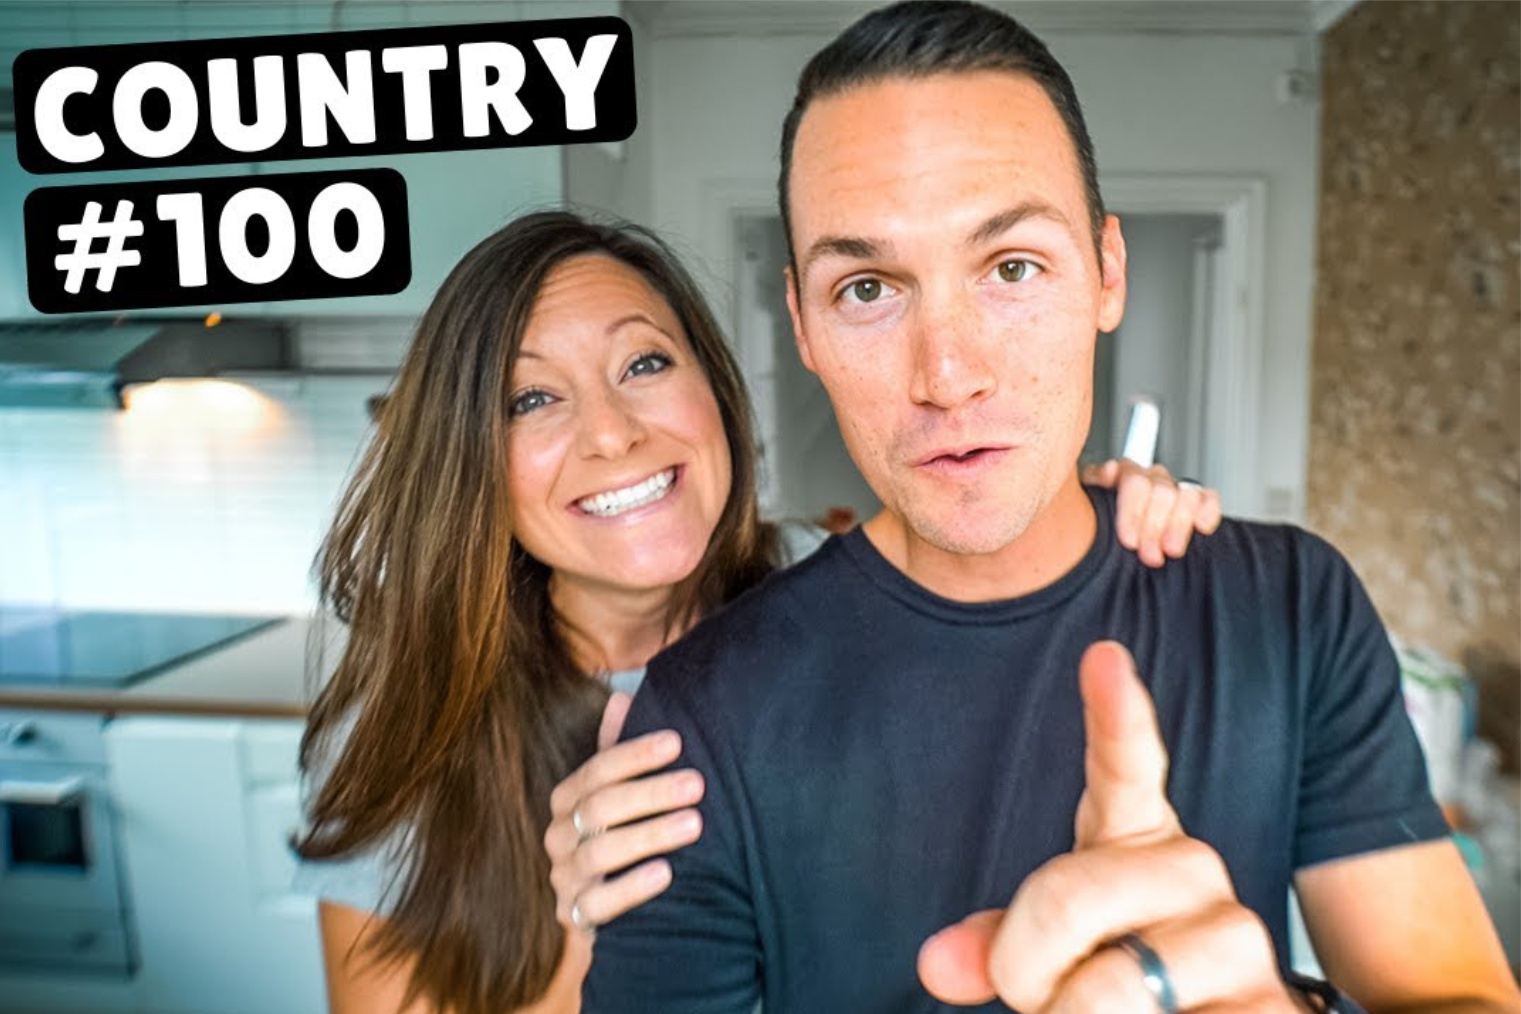 100th COUNTRY DOCUMENTARY. Kara and Nate